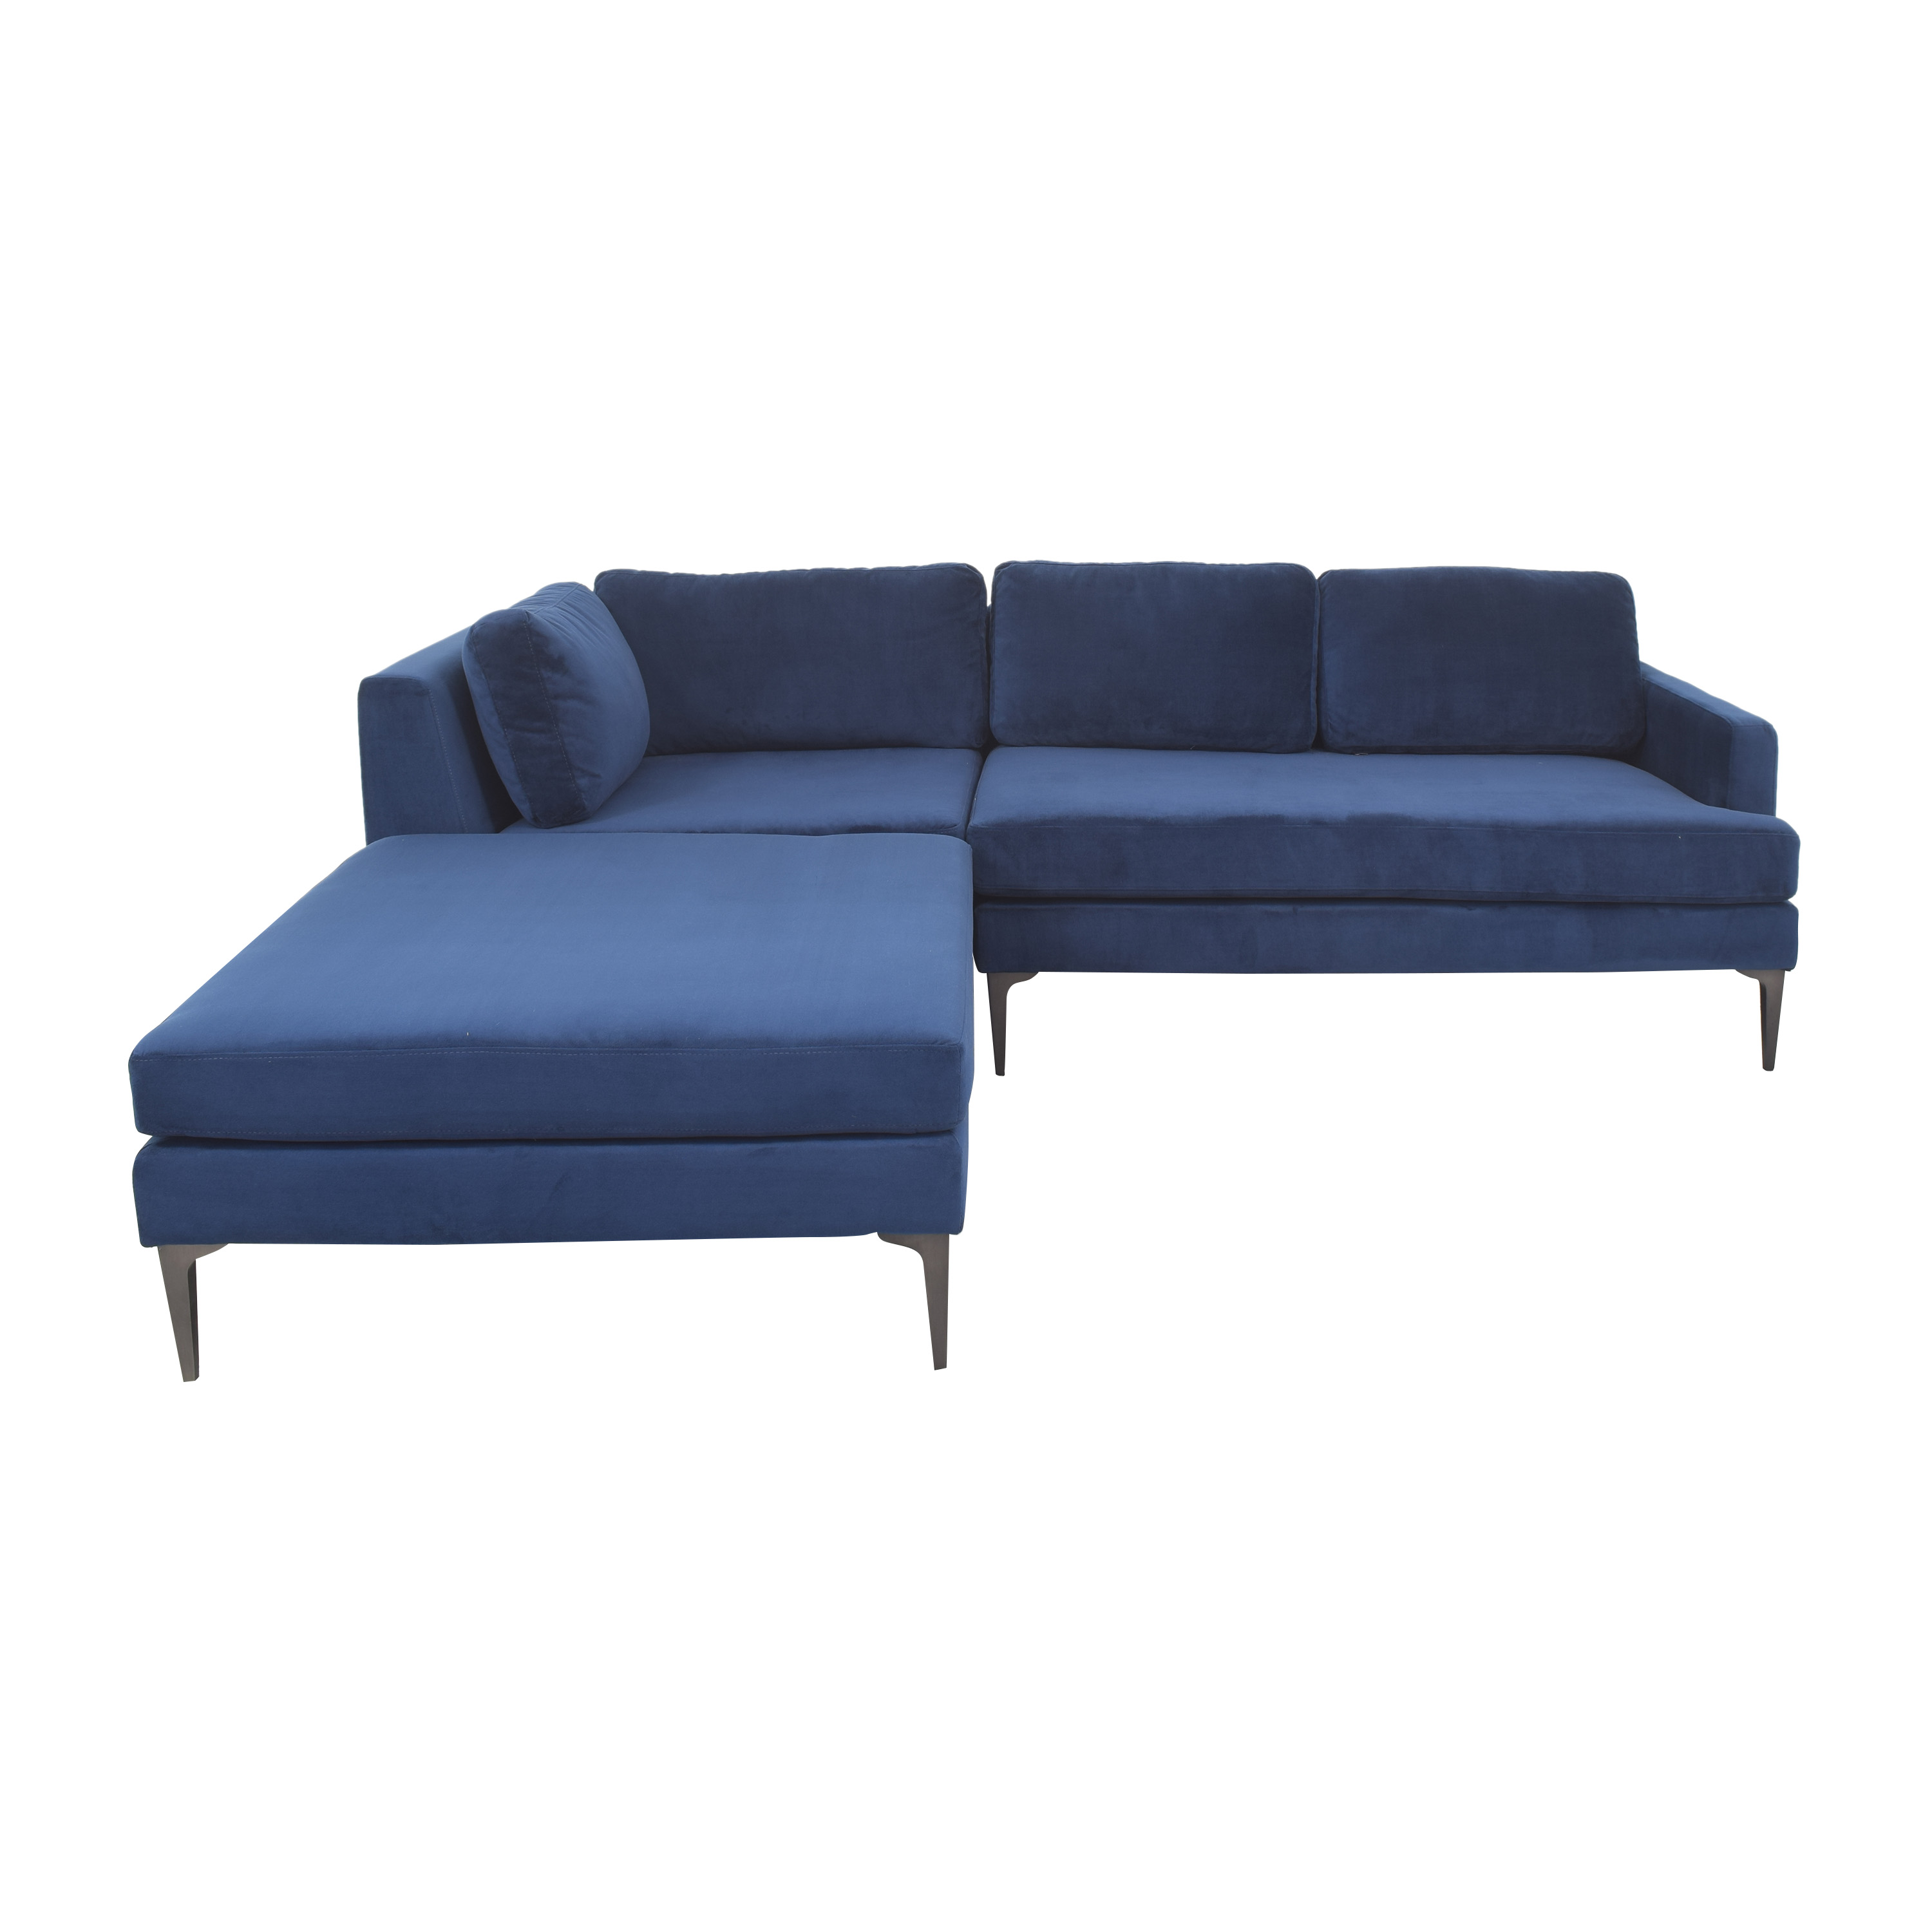 West Elm West Elm Andes 3-Piece Chaise Sectional pa